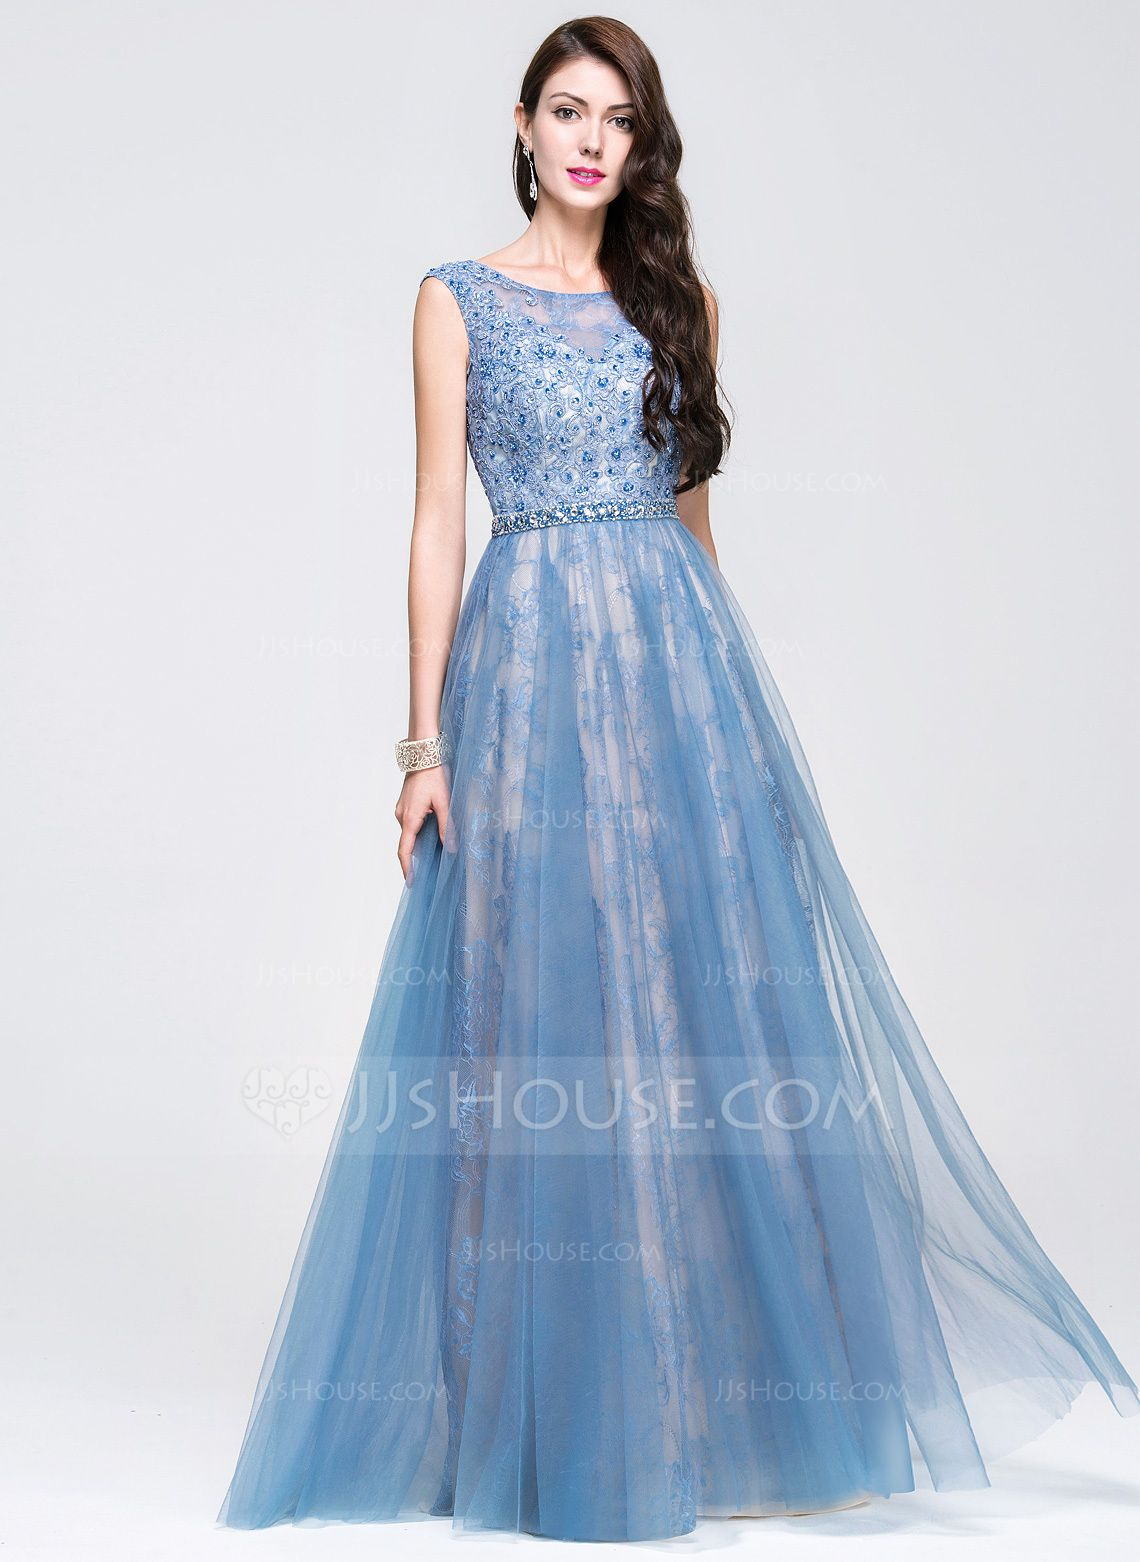 Awesome Prom Dresses Mi Gallery - All Wedding Dresses ...